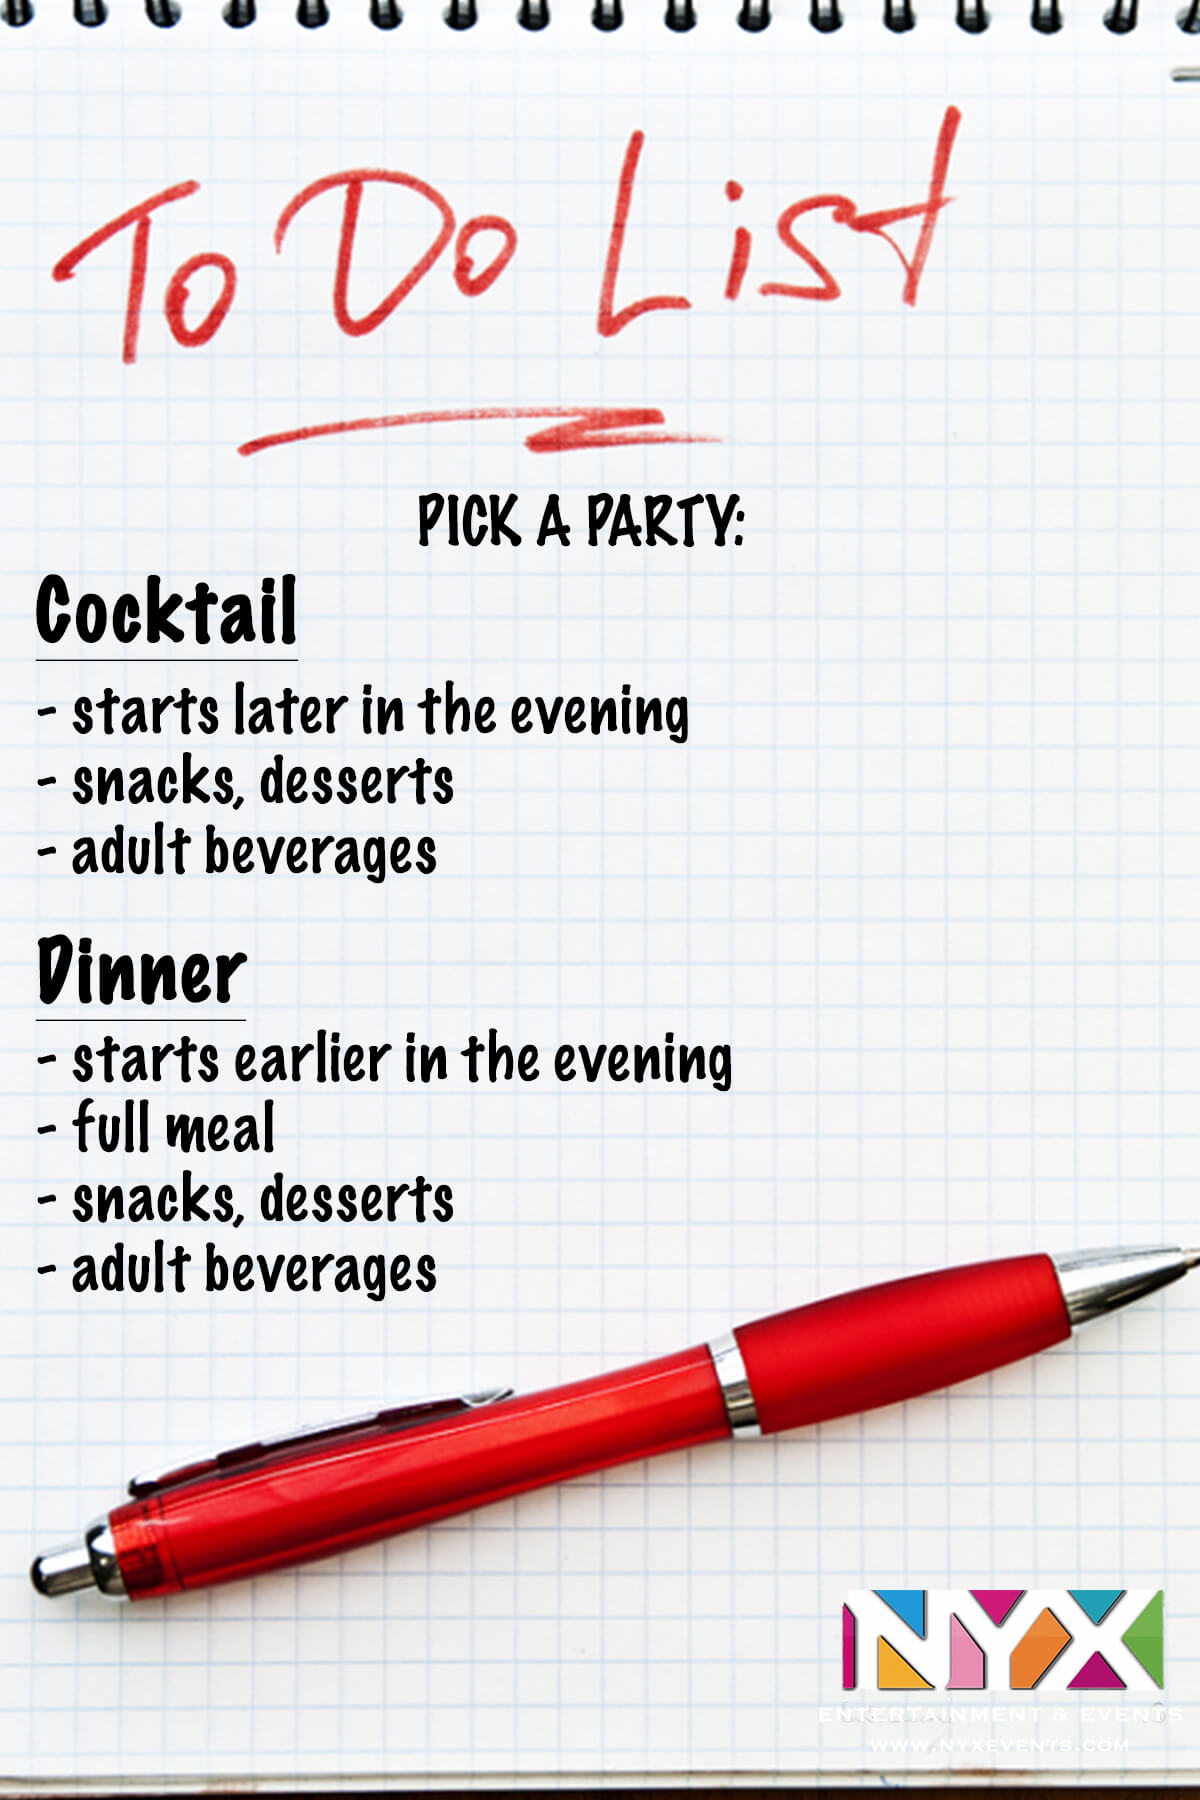 nyx entertainment events nyx to do list week one nyx